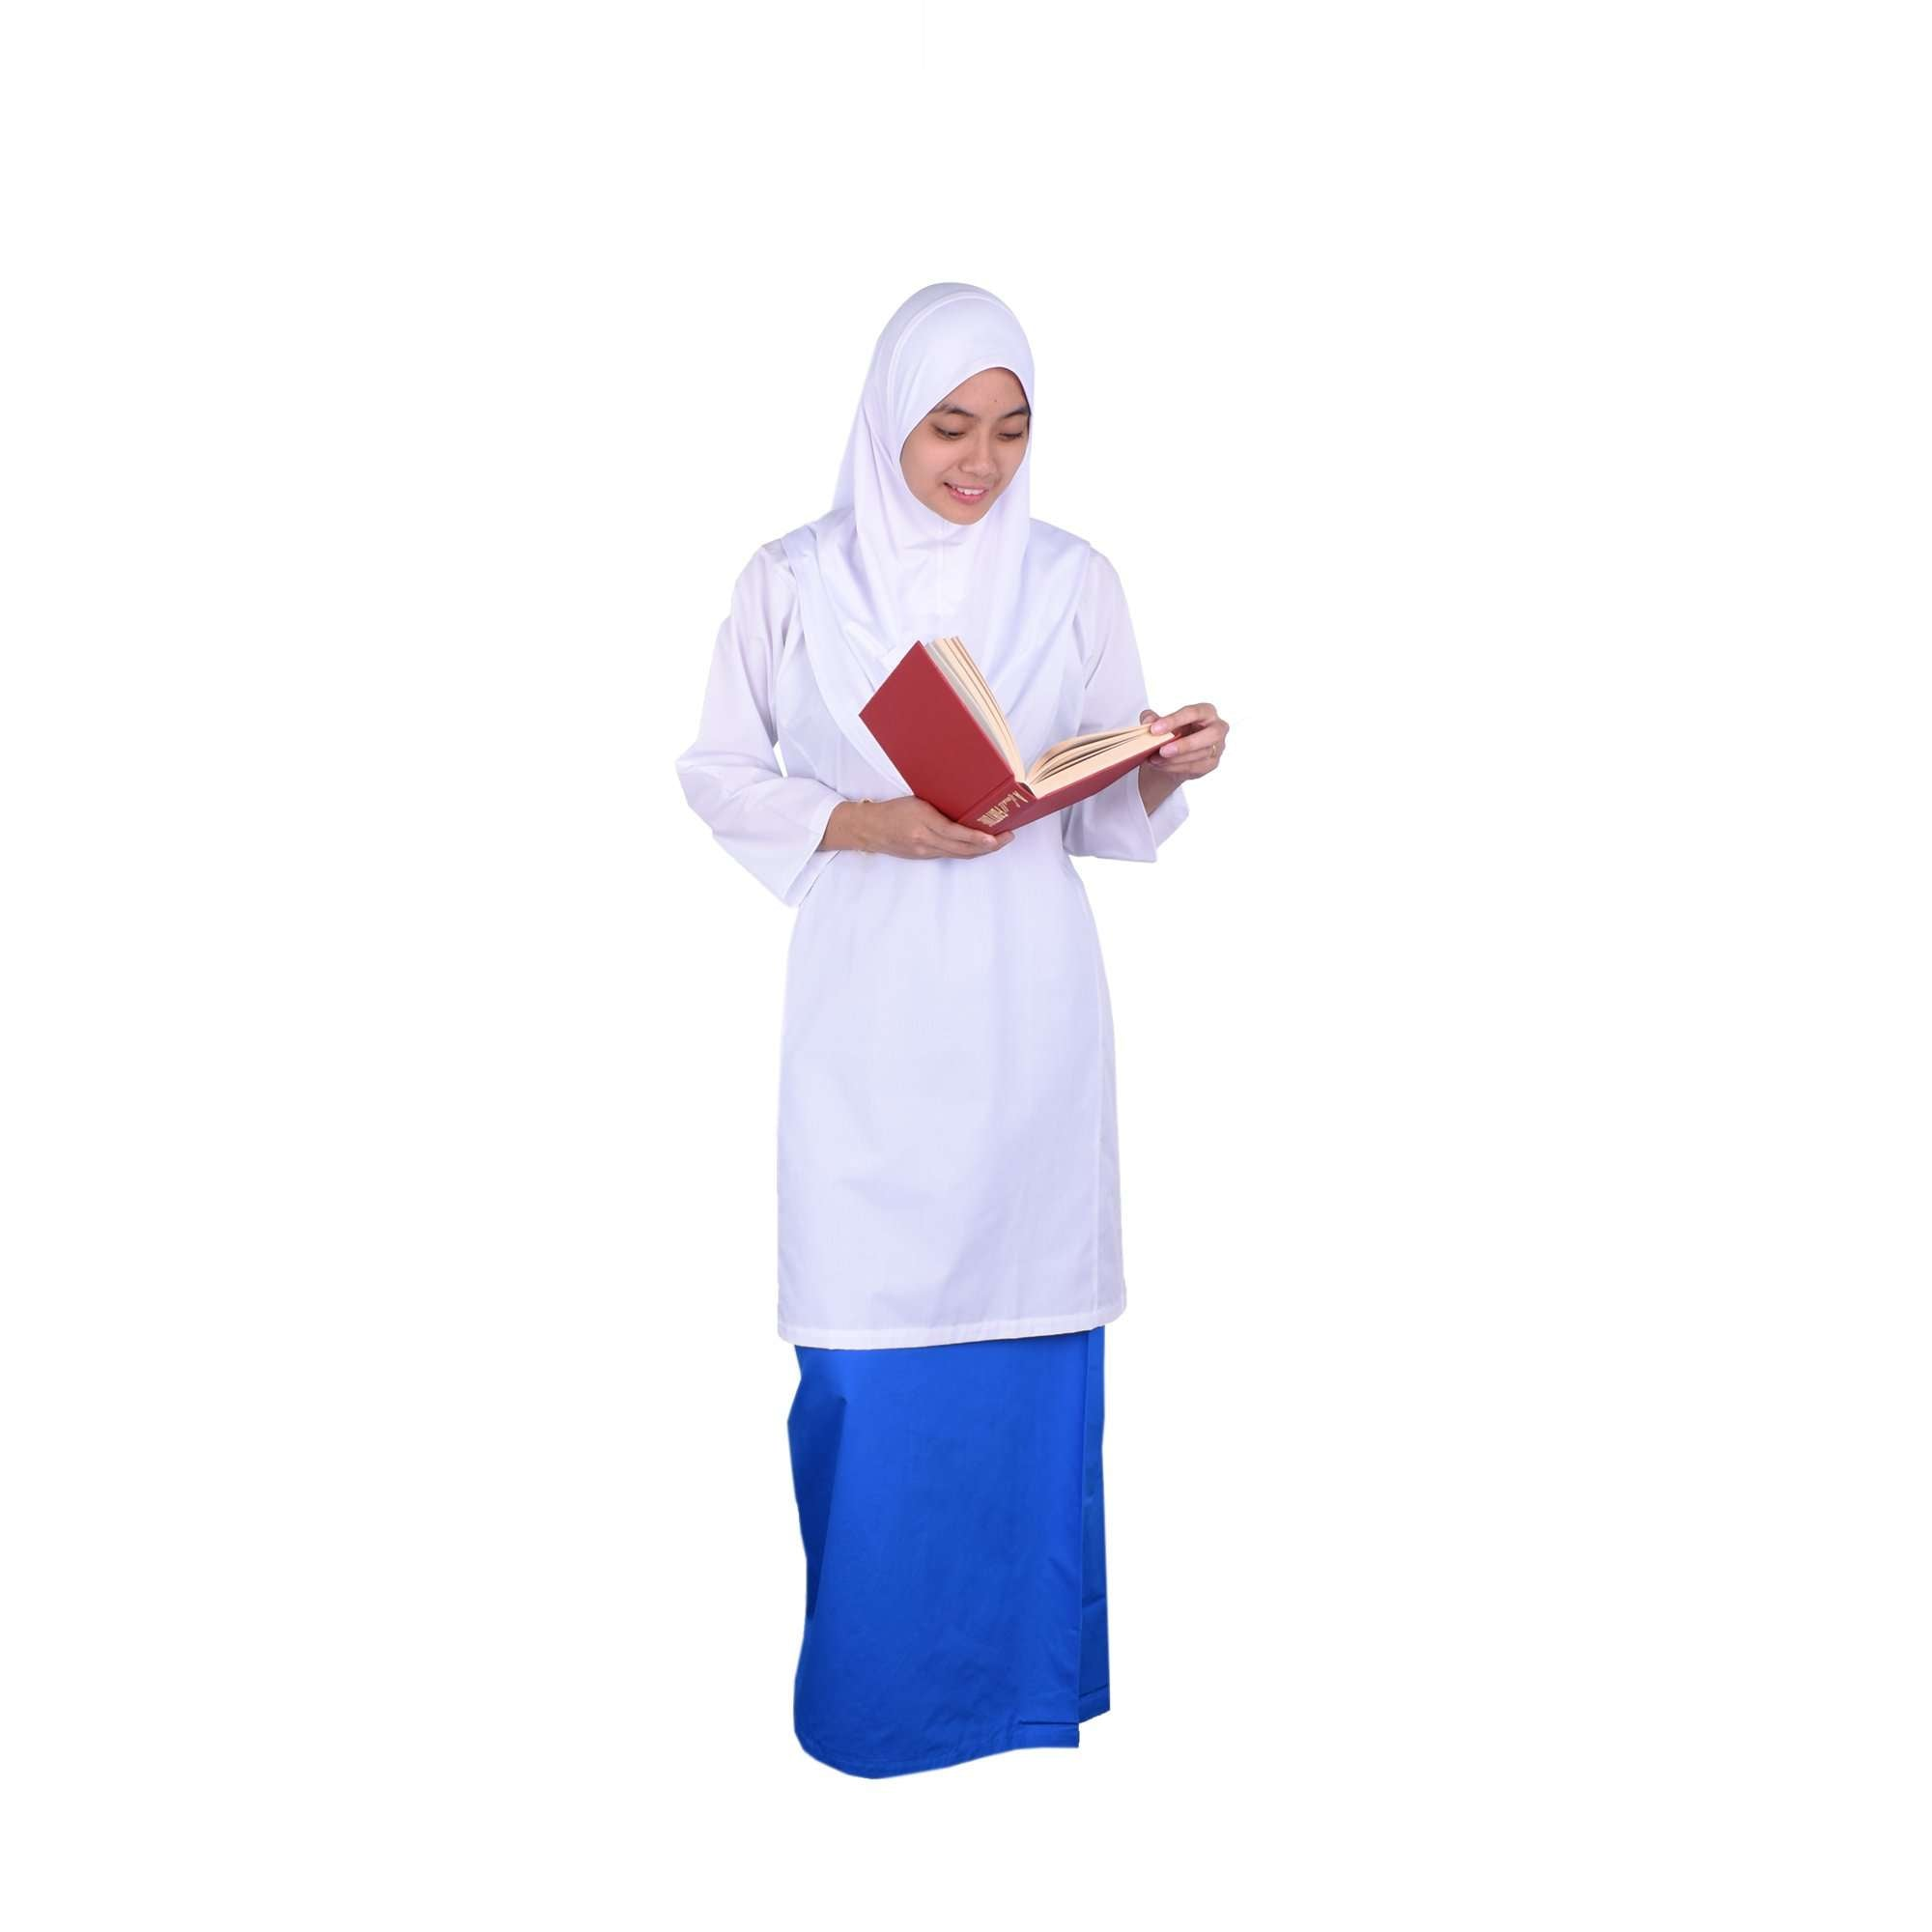 K-SECONDARY GIRL SCHOOL UNIFORM Long Skirt - BLUE X956109-2601-L5 : Buy K-Secondary online at CMG.MY